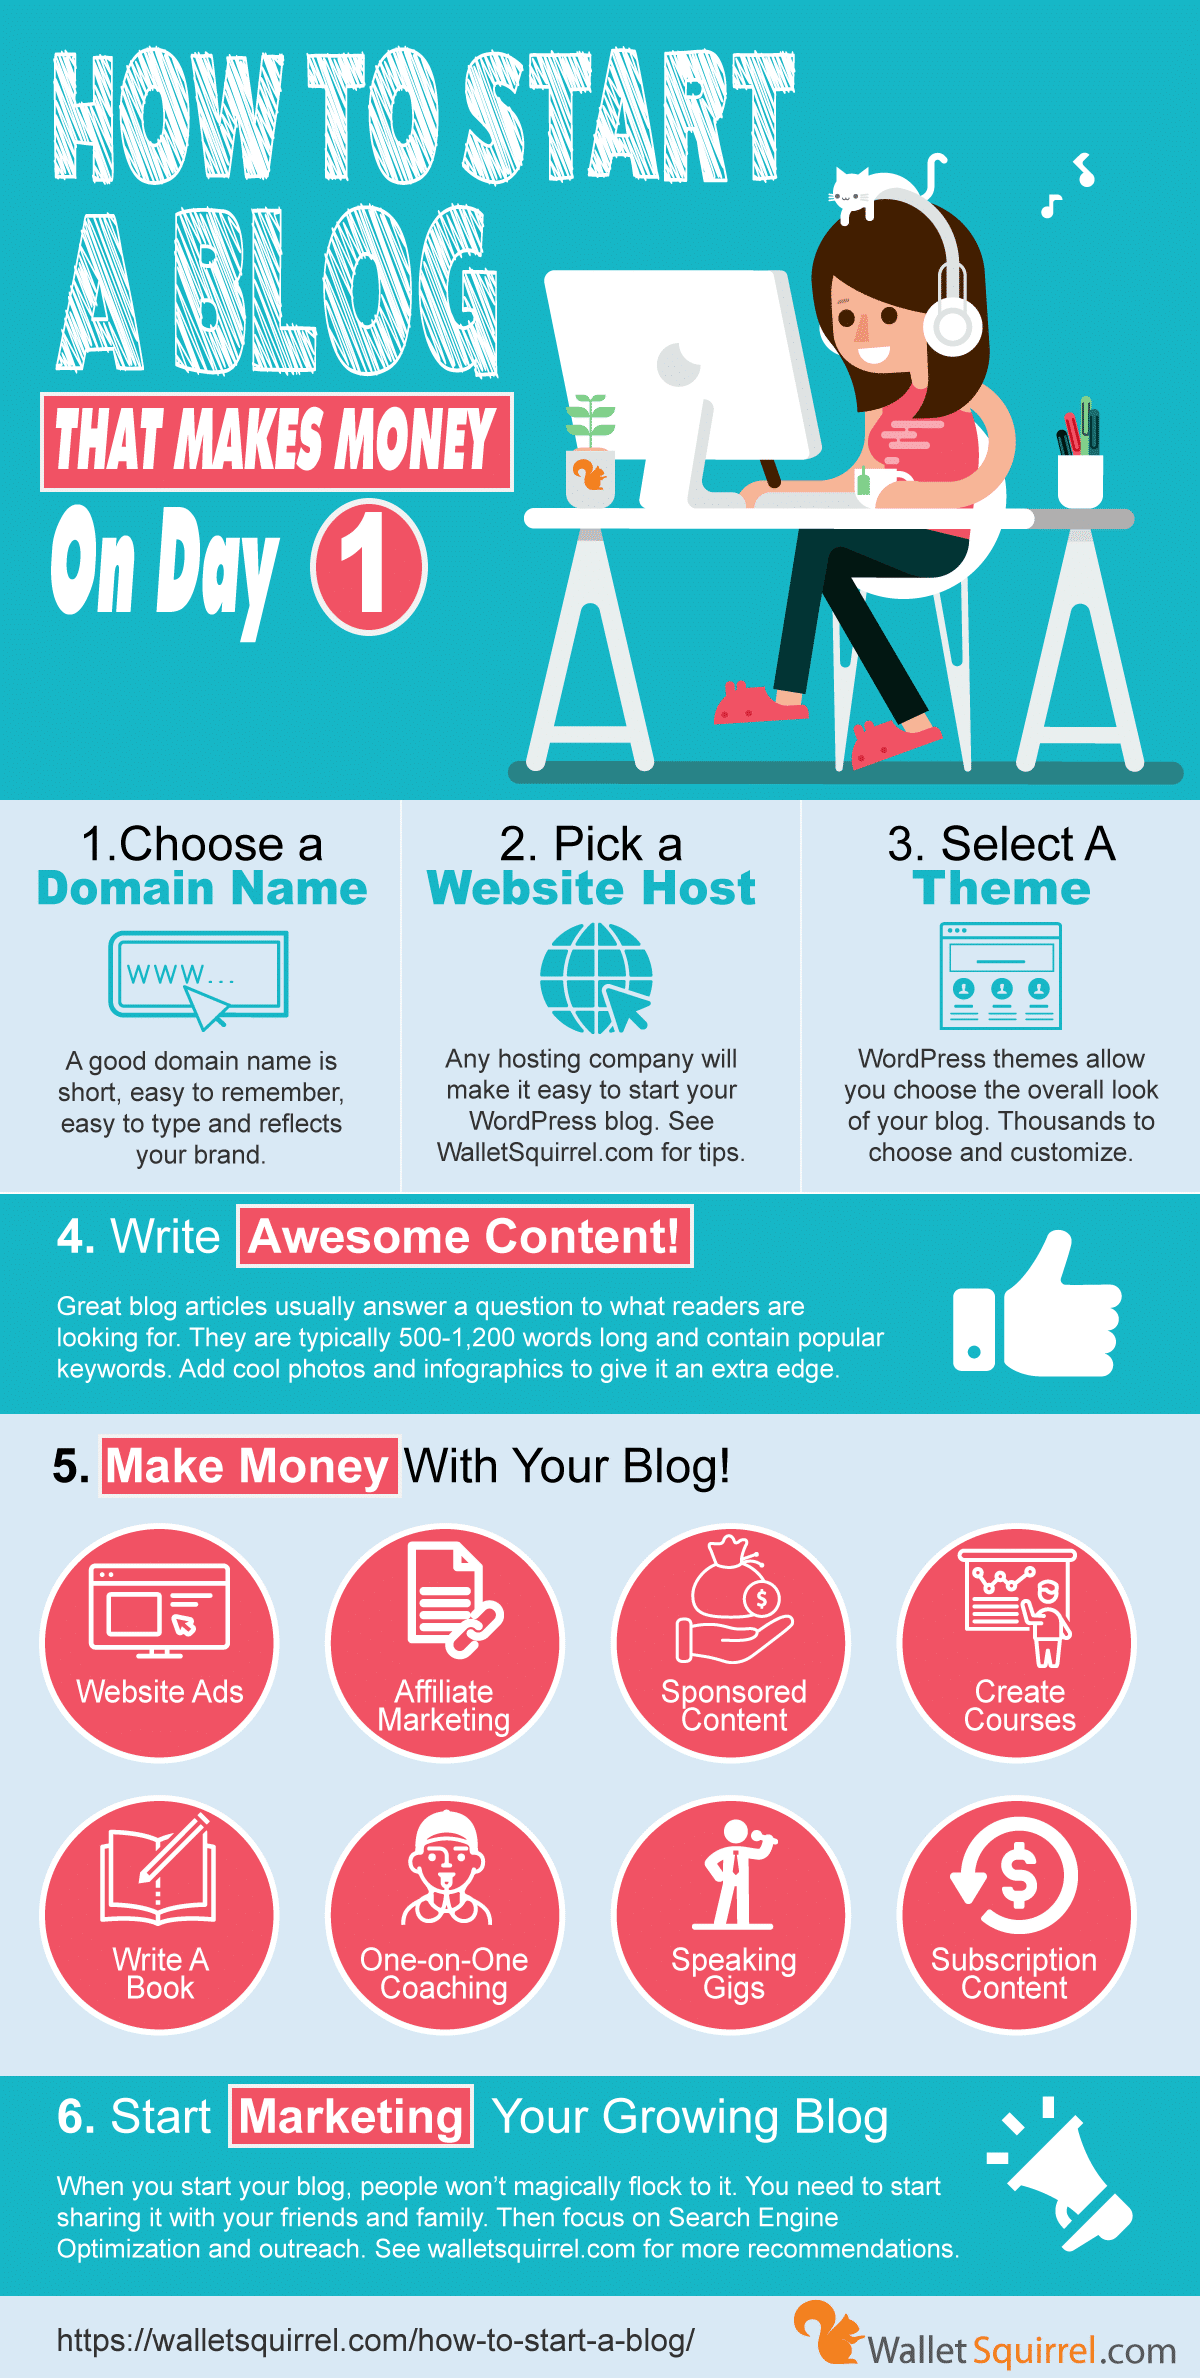 How To Start A Blog Infographic - Wallet Squirrel